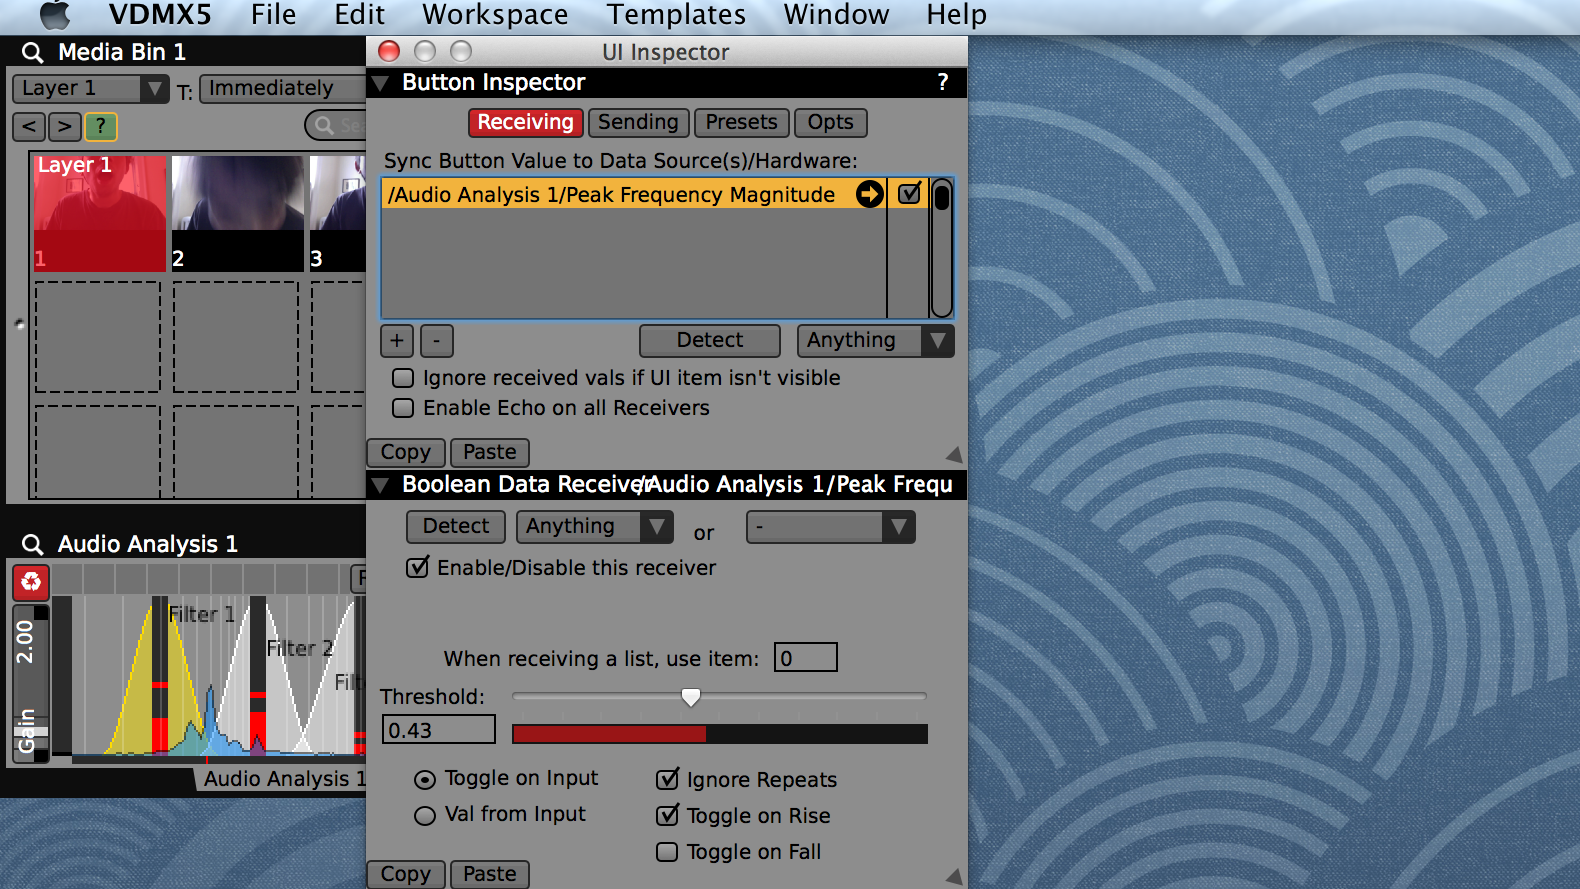 Previous, Next and Random clips can be triggered using buttons in the main Media Bin interface.